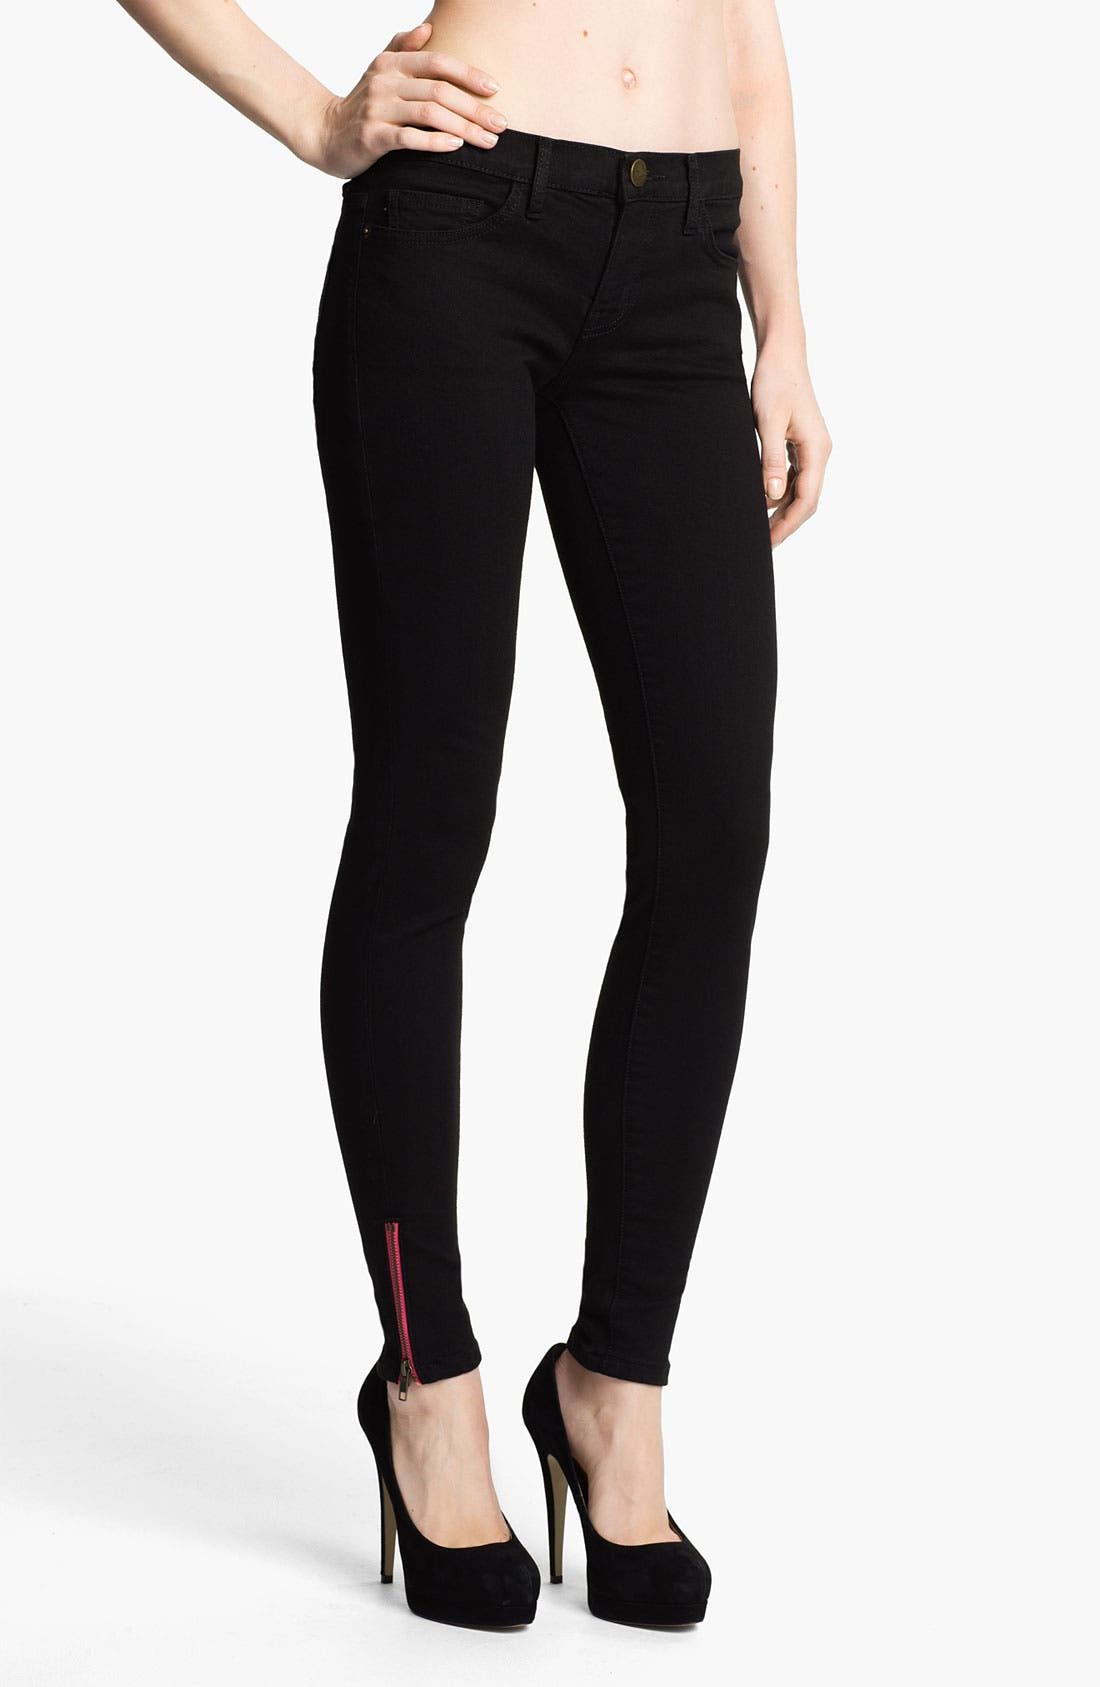 Alternate Image 1 Selected - Current/Elliott Skinny Stretch Ankle Jeans